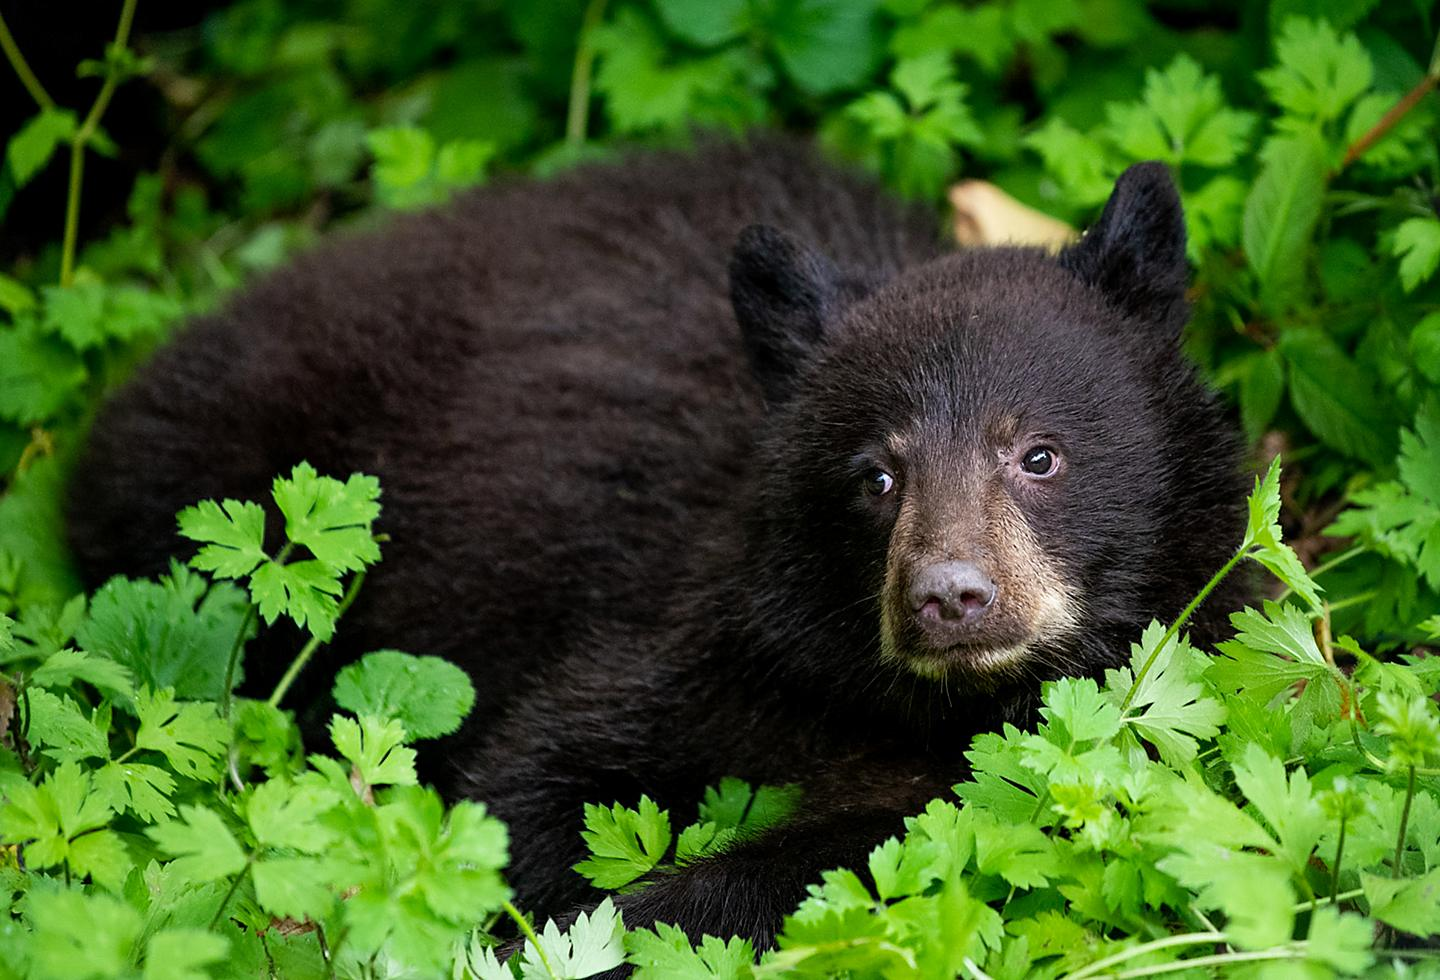 Brownbear Resting On Top of Leaves